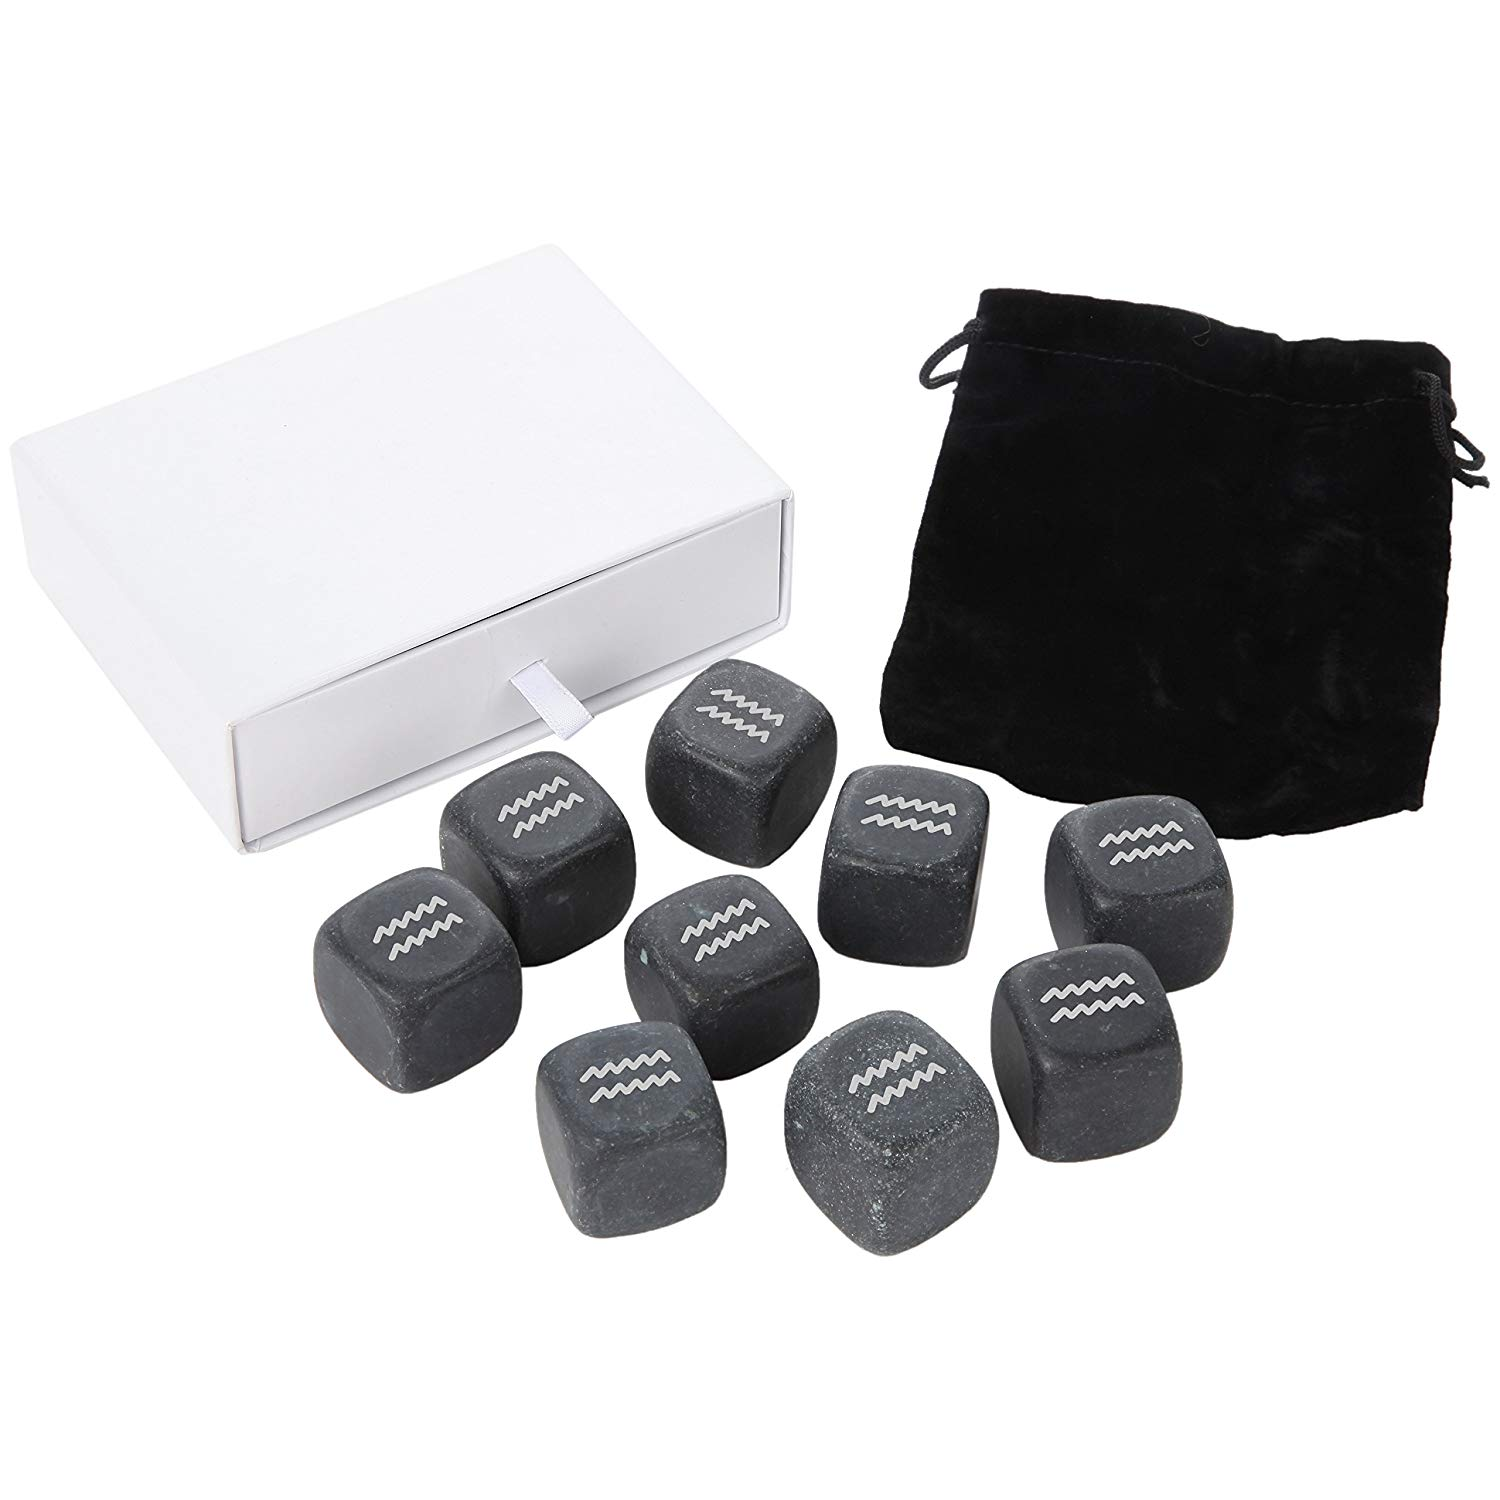 Get Quotations · Aquarius Whiskey Stones Set - Granite Chilling Stones For Whiskey And Other Liquor - Ideal Gifts